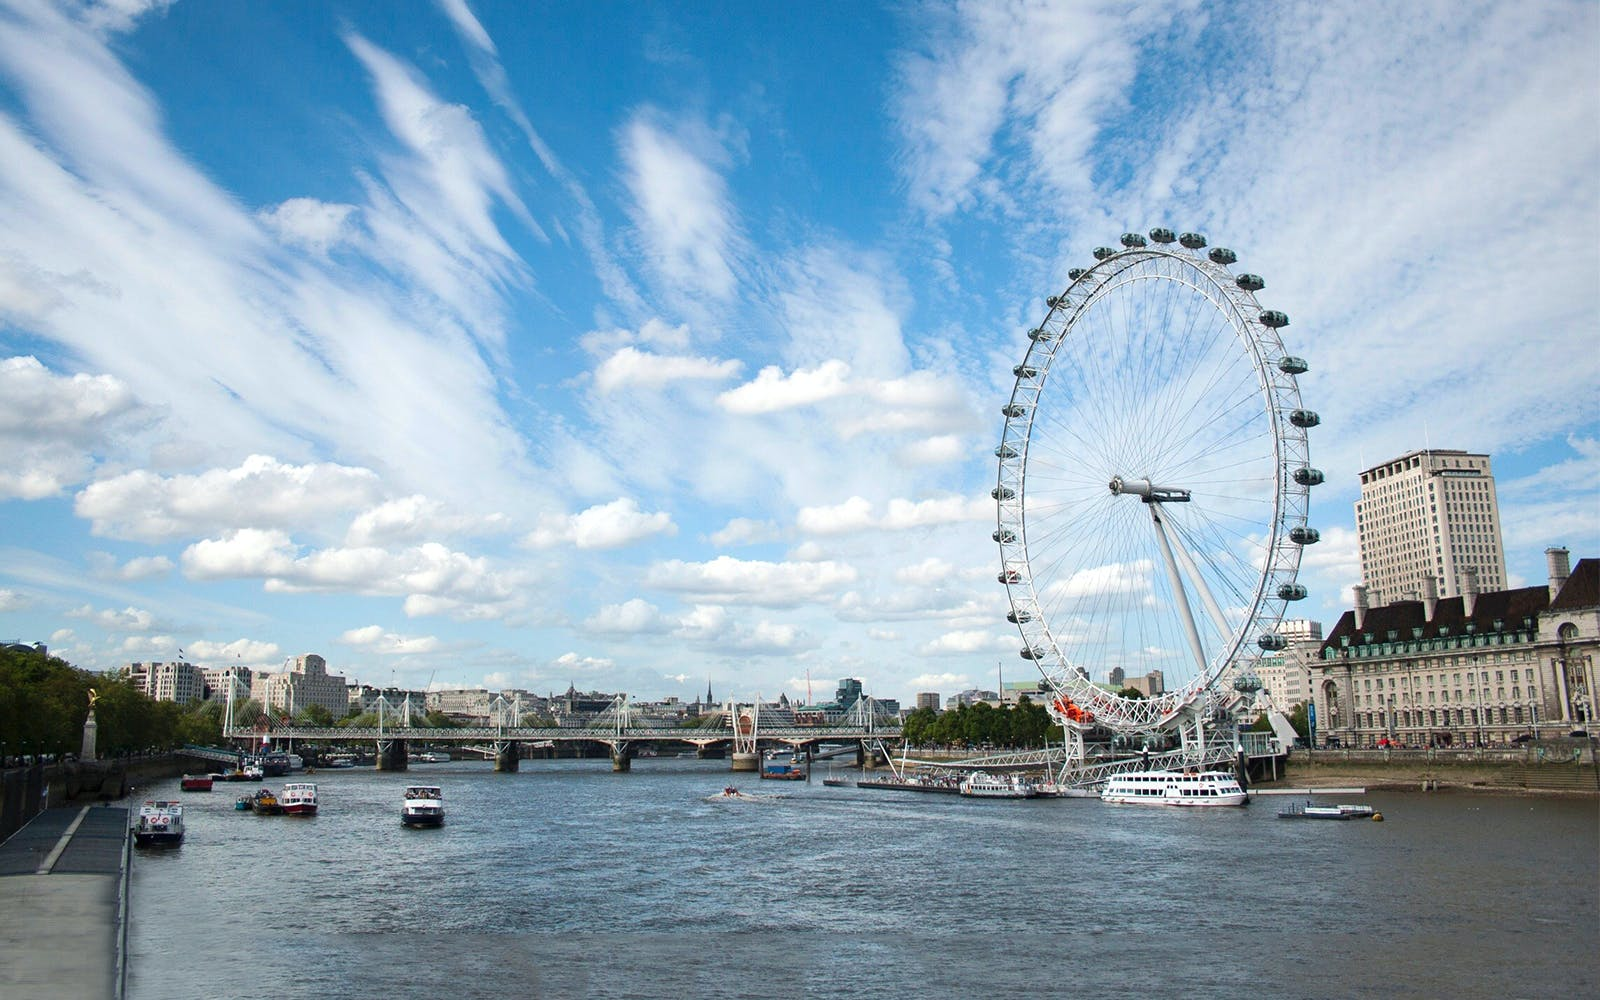 london eye tickets and 24 hours thames river cruise combo-1